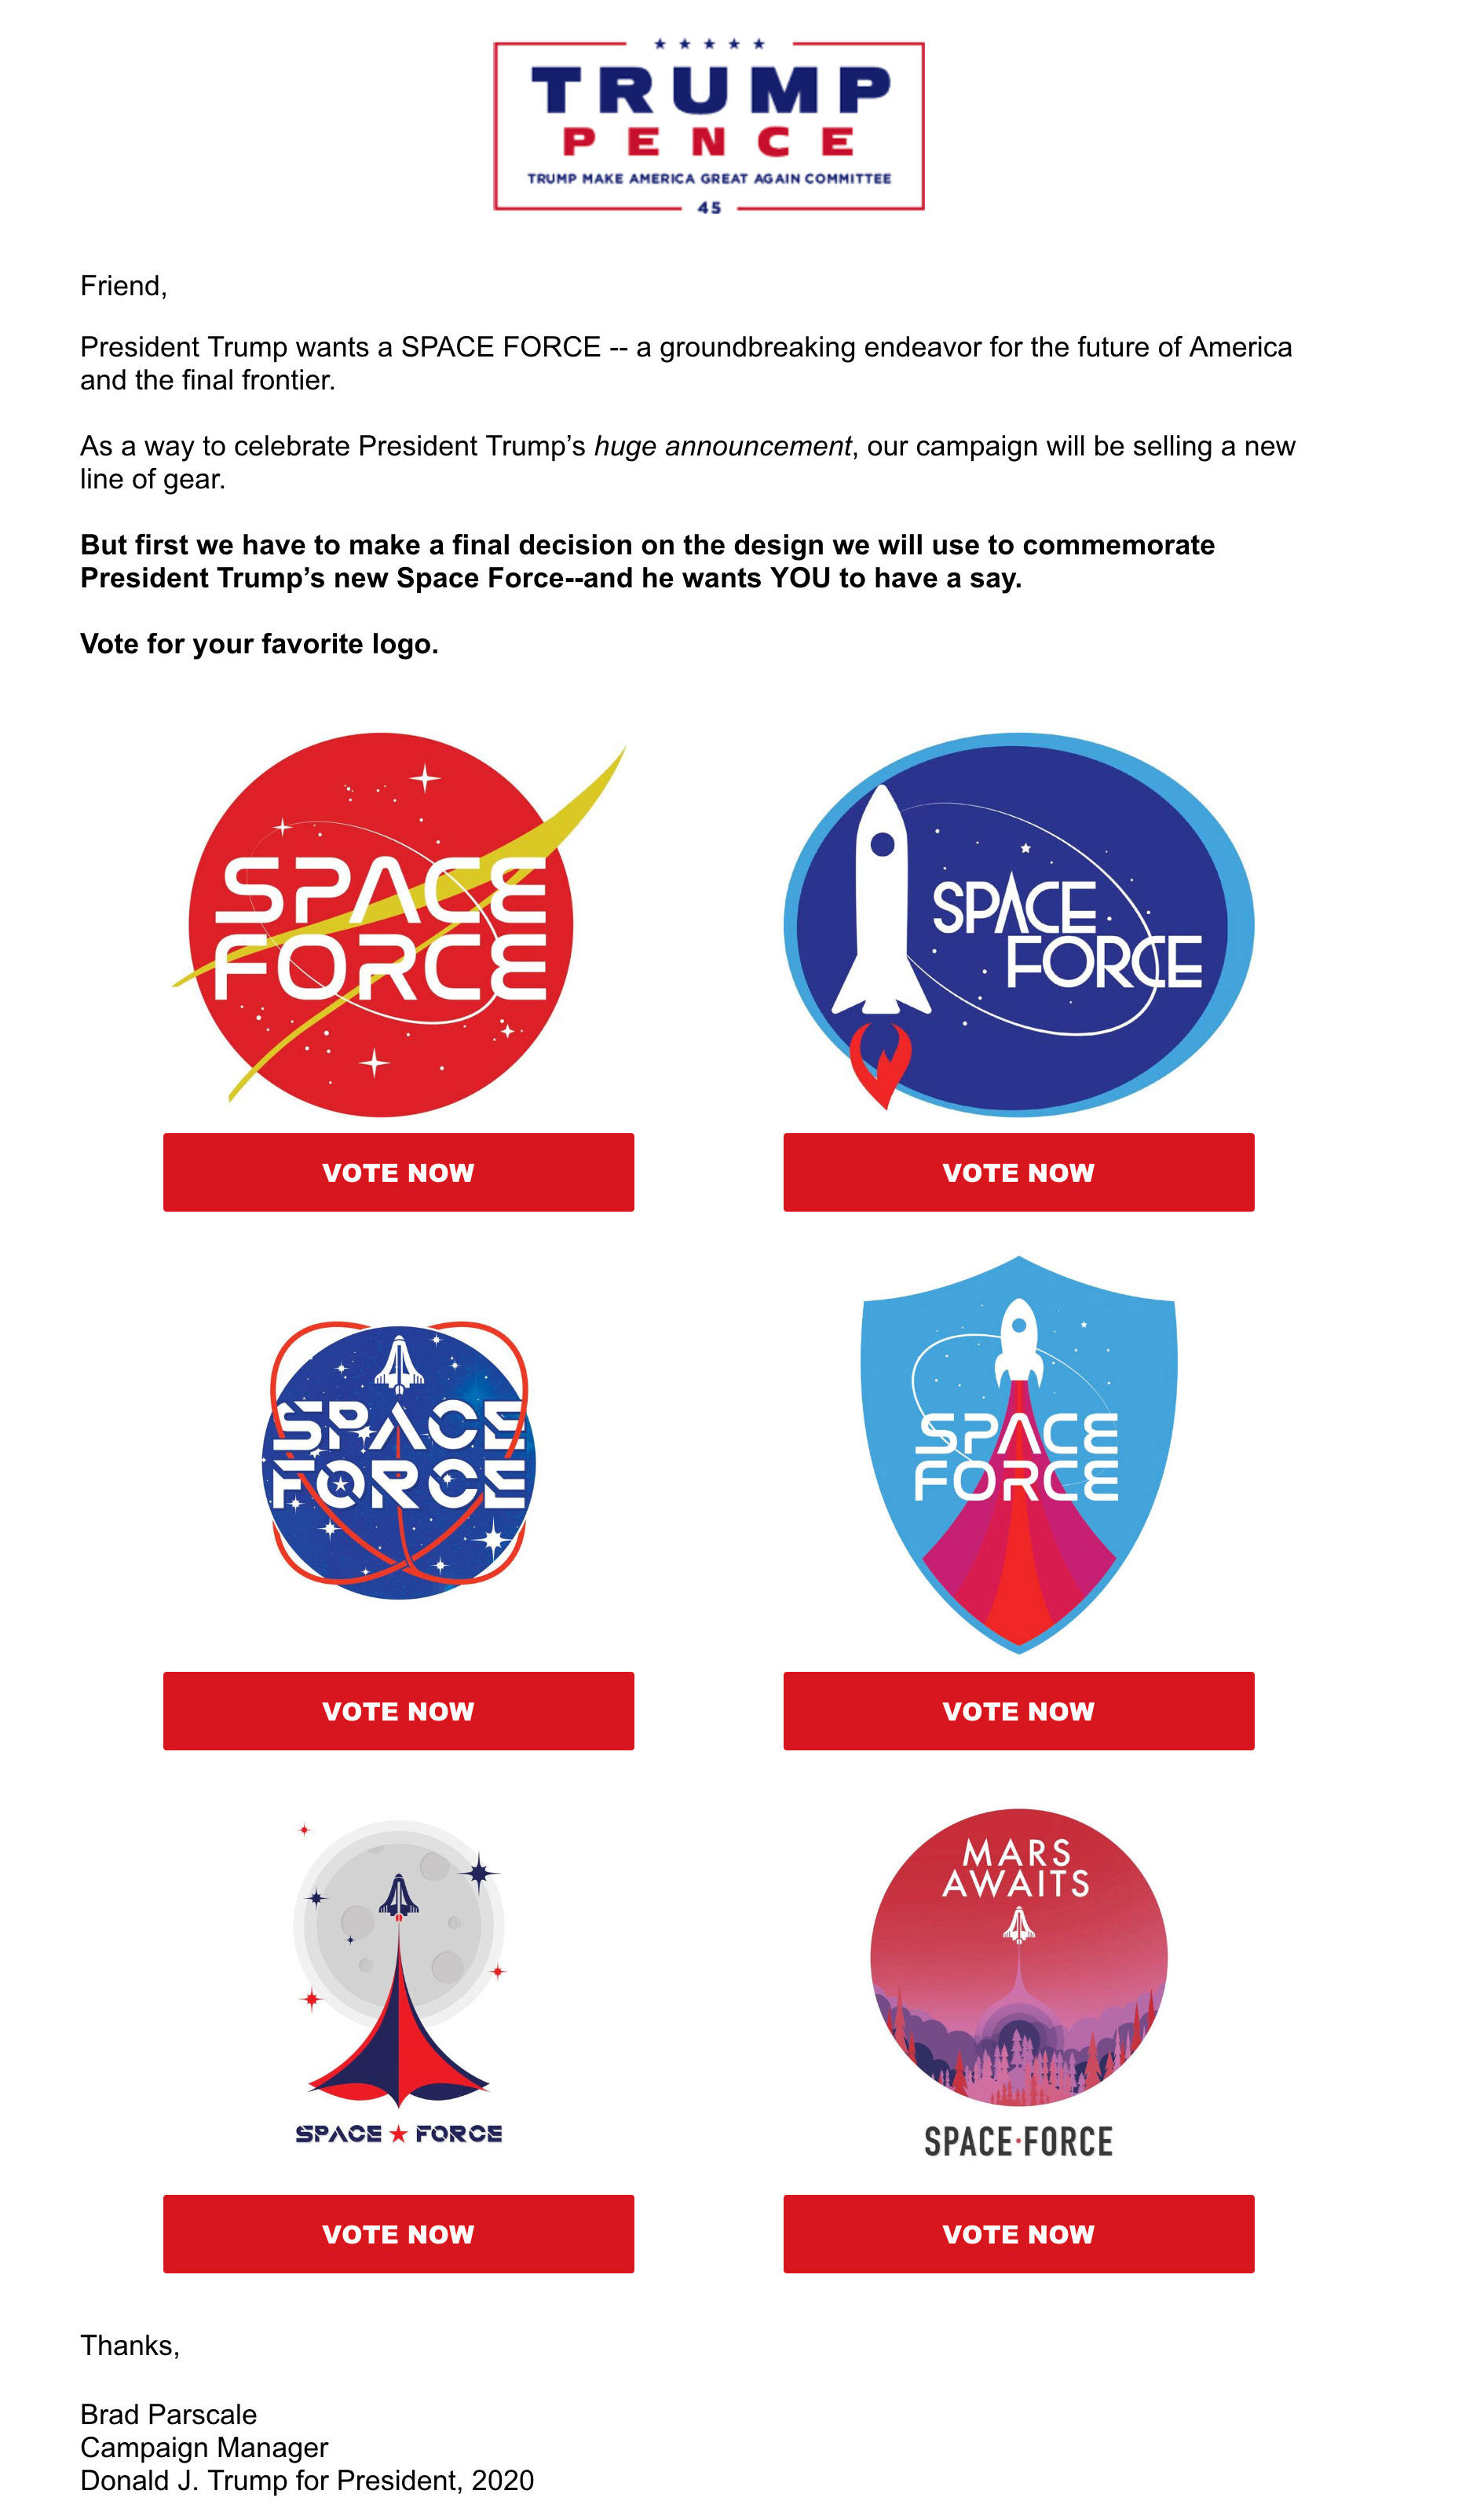 space-force-trump-pence-fundraiser